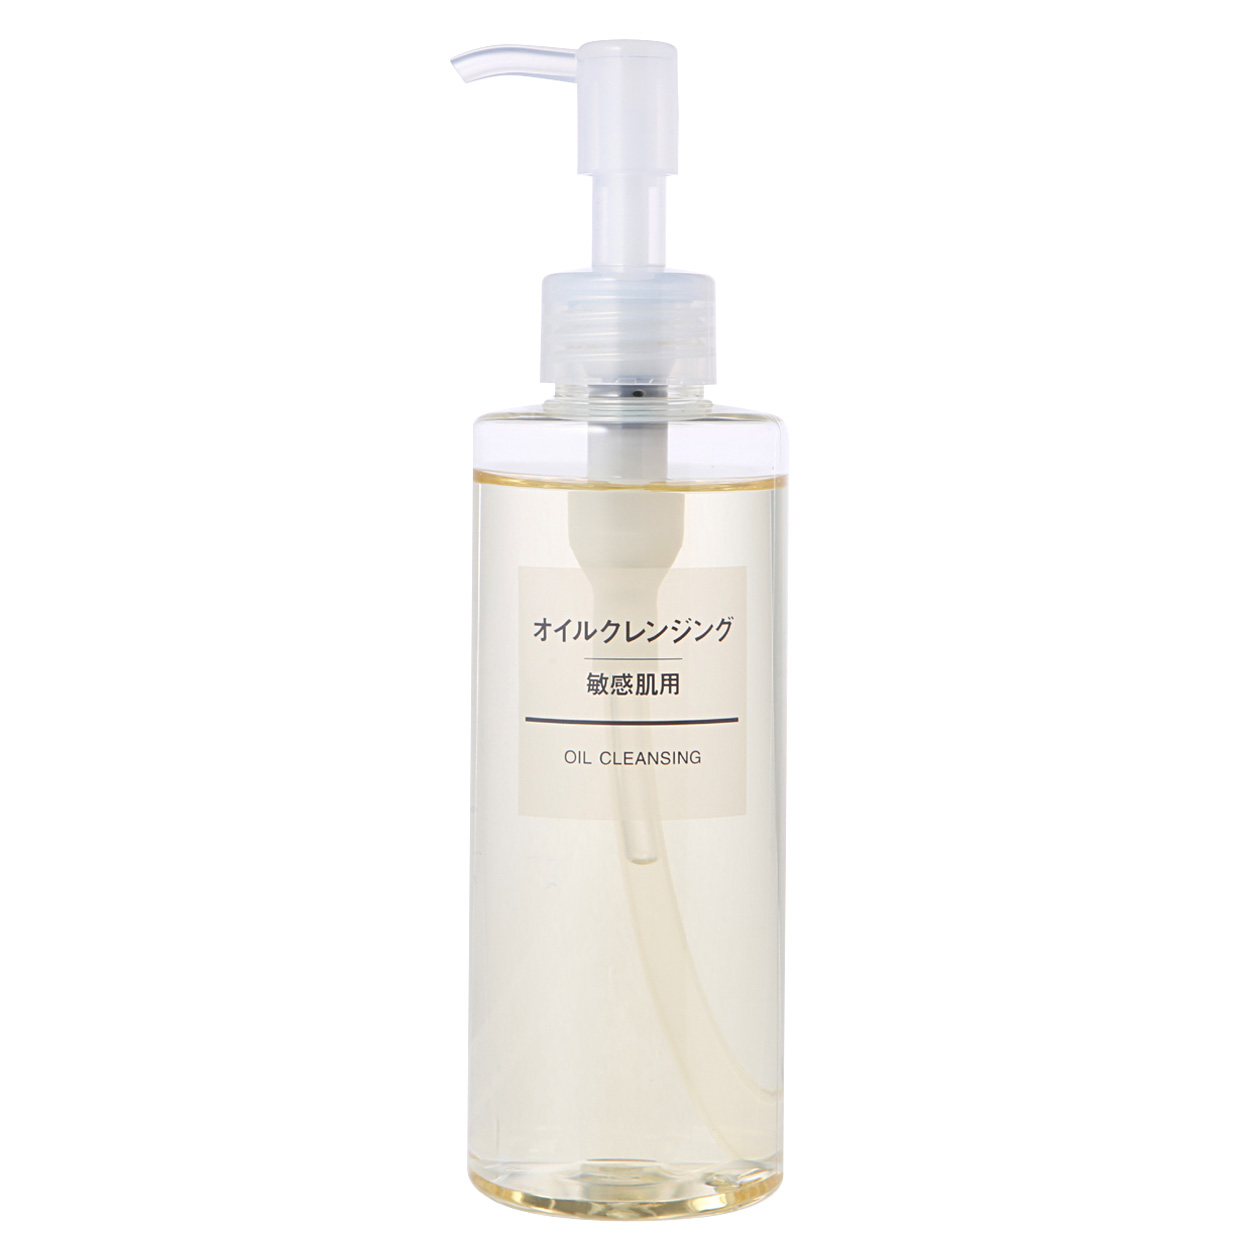 Muji cleansing oil Sensitive 200ml